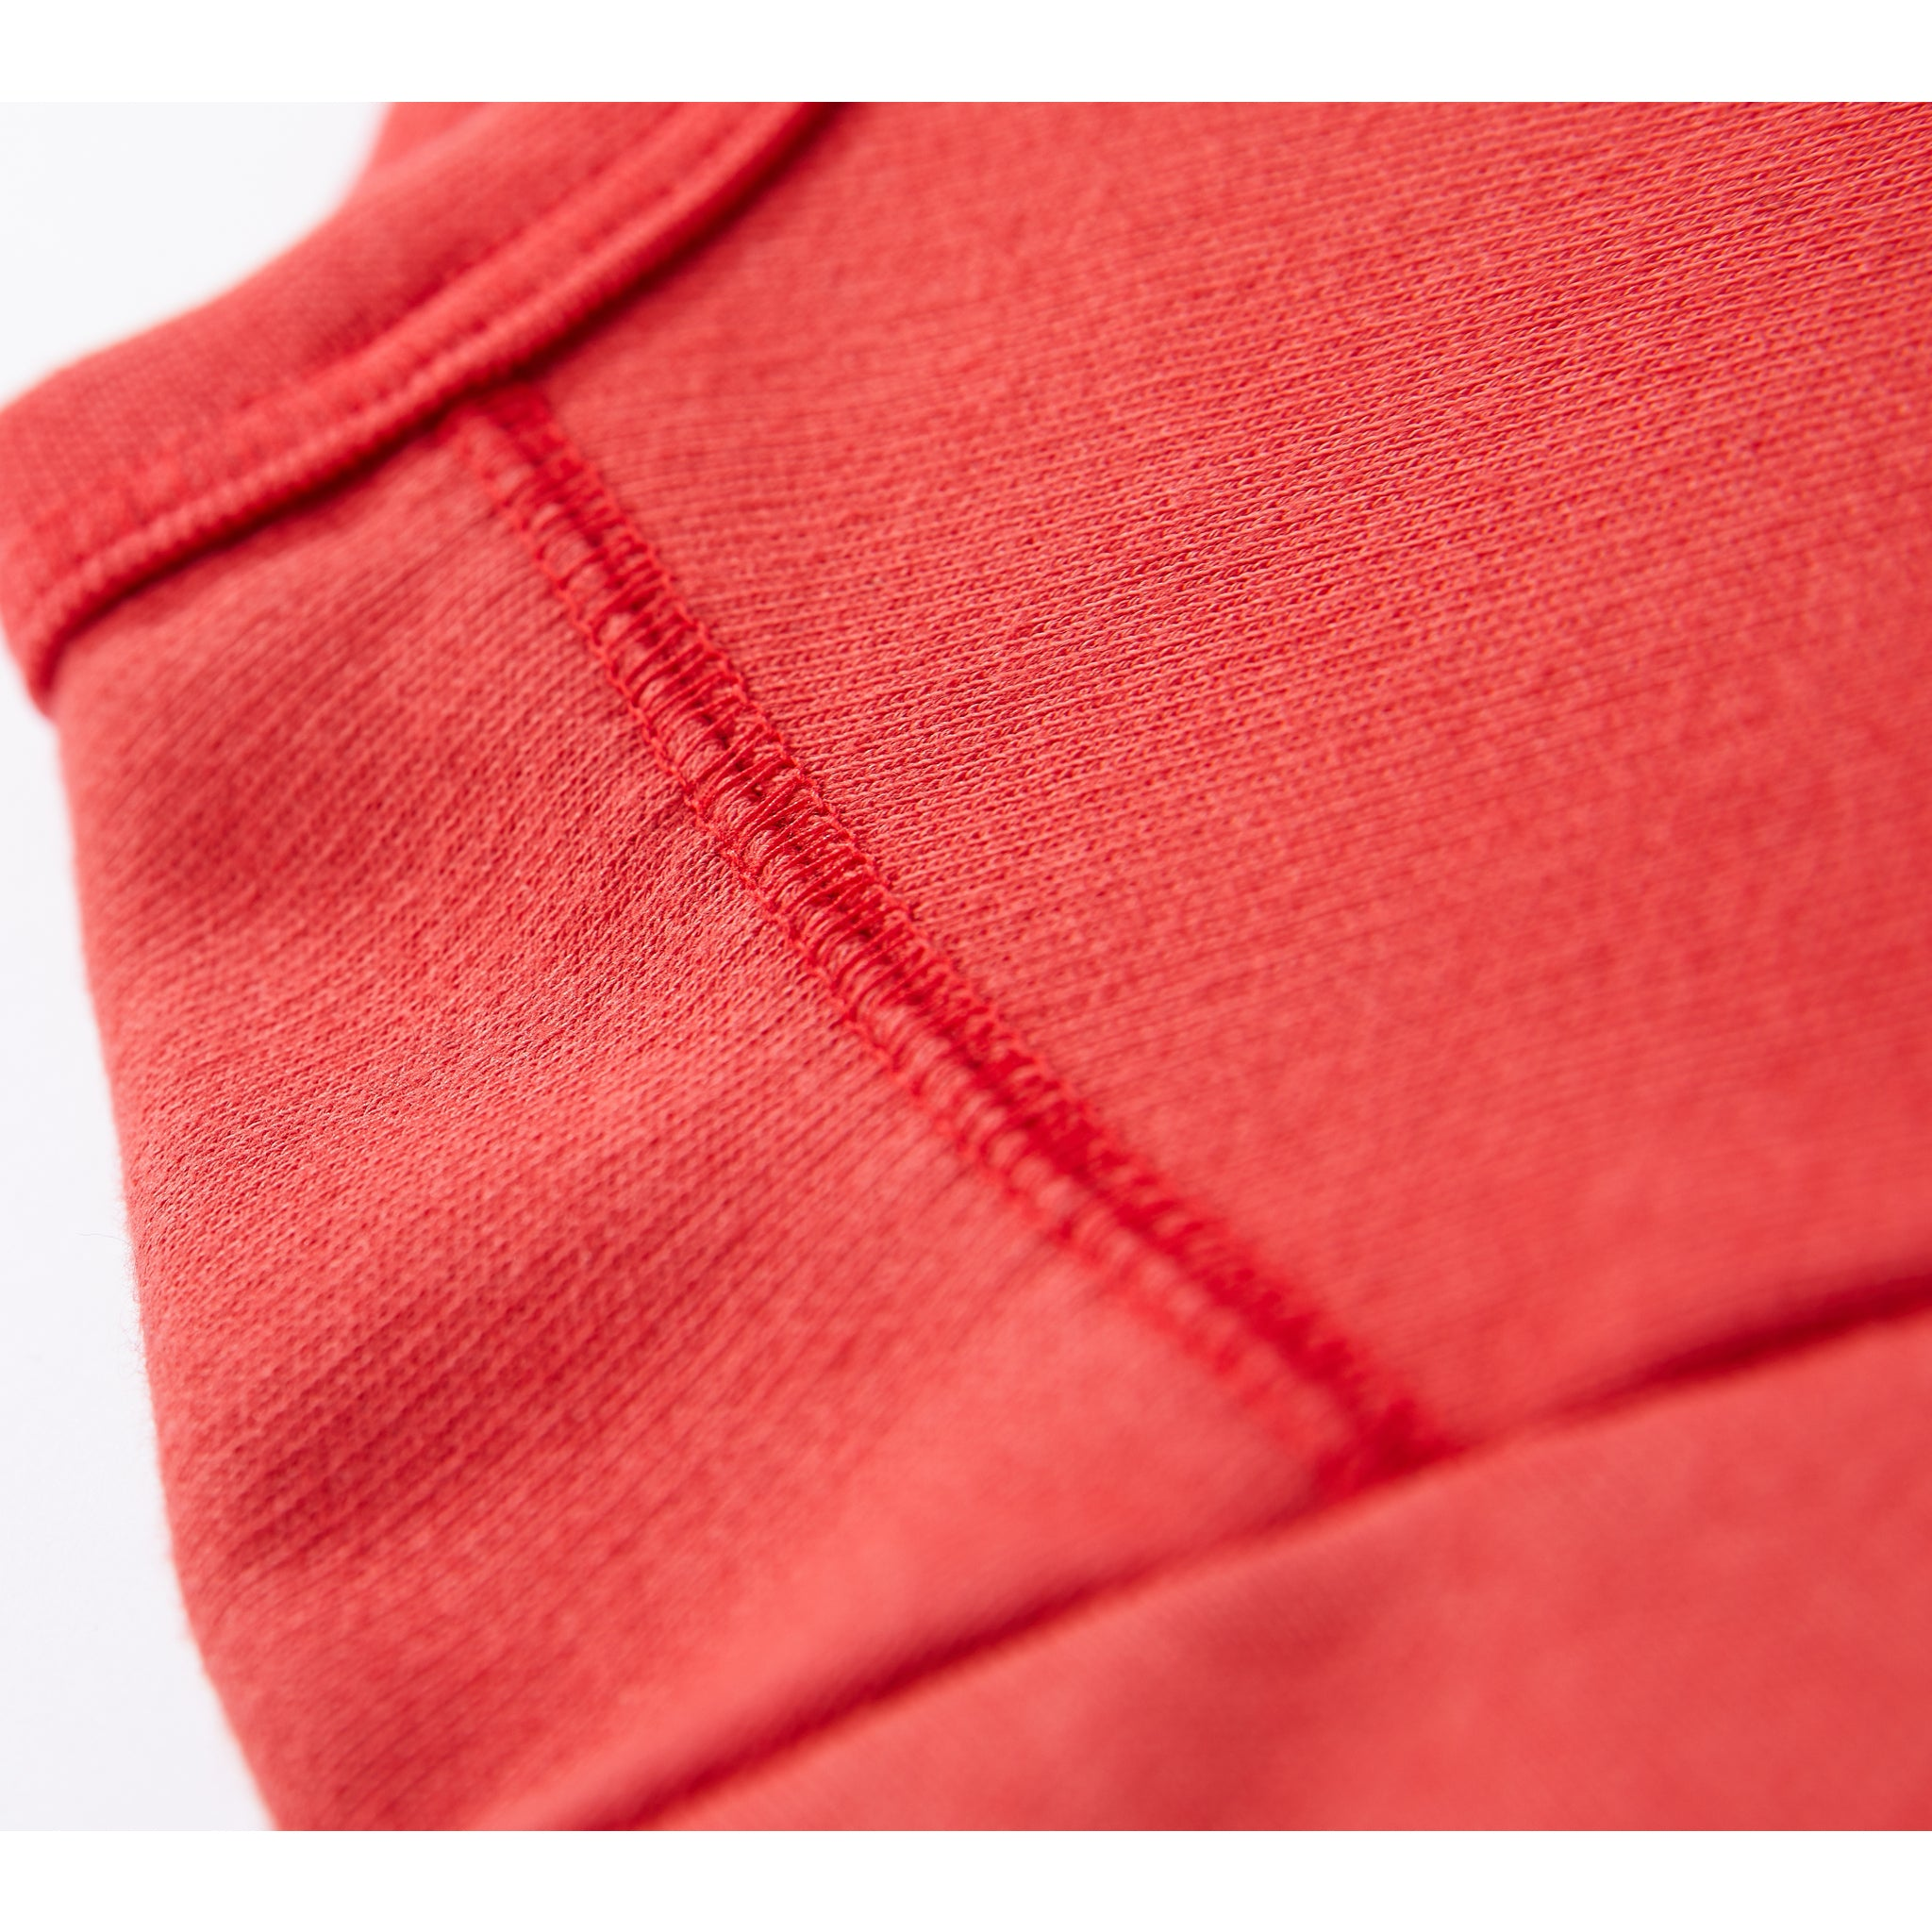 BRIAN Poppy Red - Crew Neck Sweatshirt 3